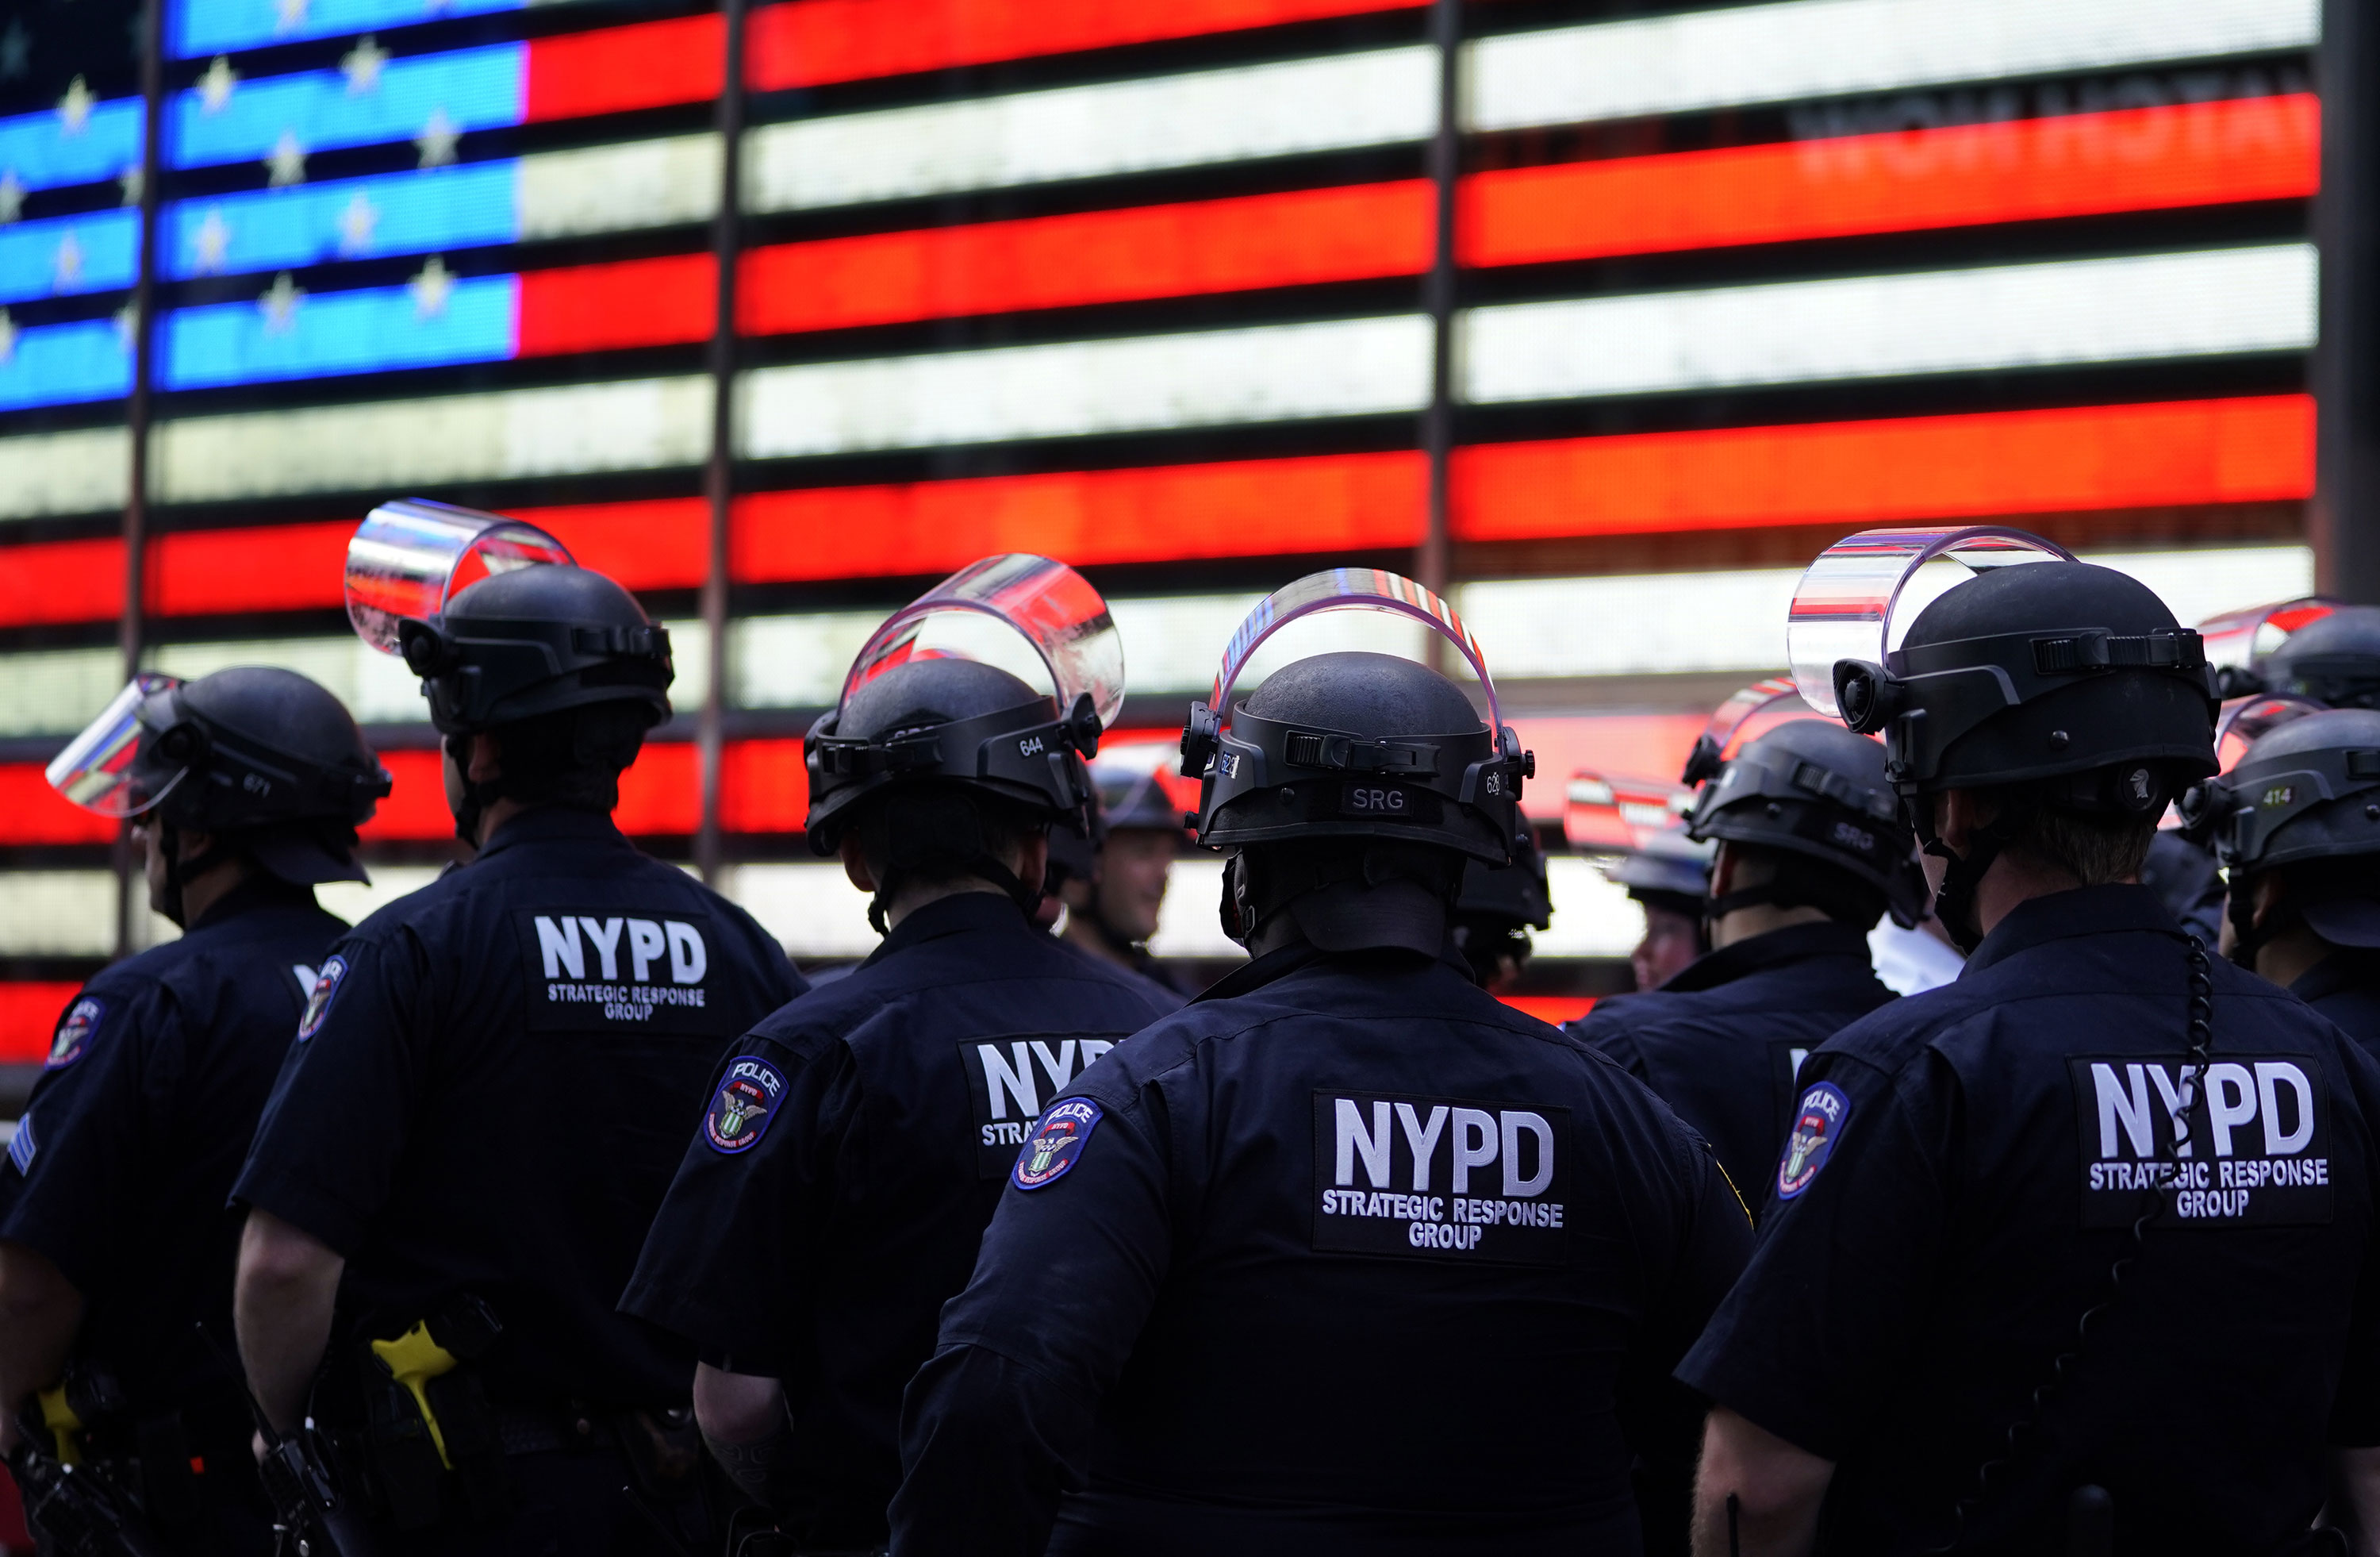 Lawsuit over NYPD discipline records highlights the tension between police and oversight agencies